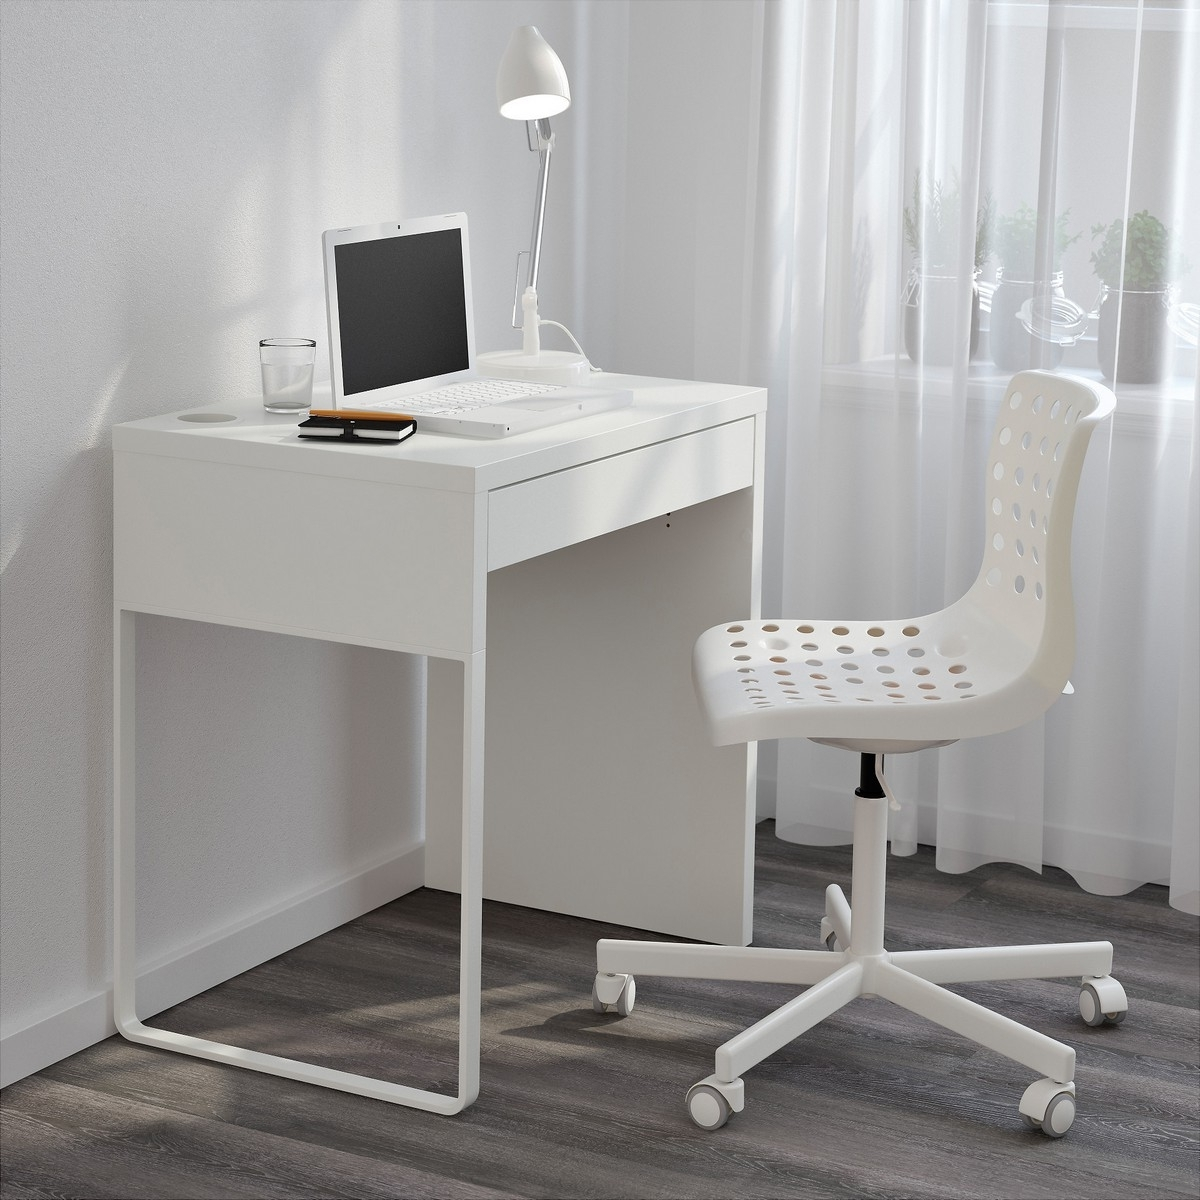 Desks For Small Spaces Style — Home Design Ideas : Make Small Pertaining To 2019 Computer Desks For Small Rooms (Gallery 7 of 20)